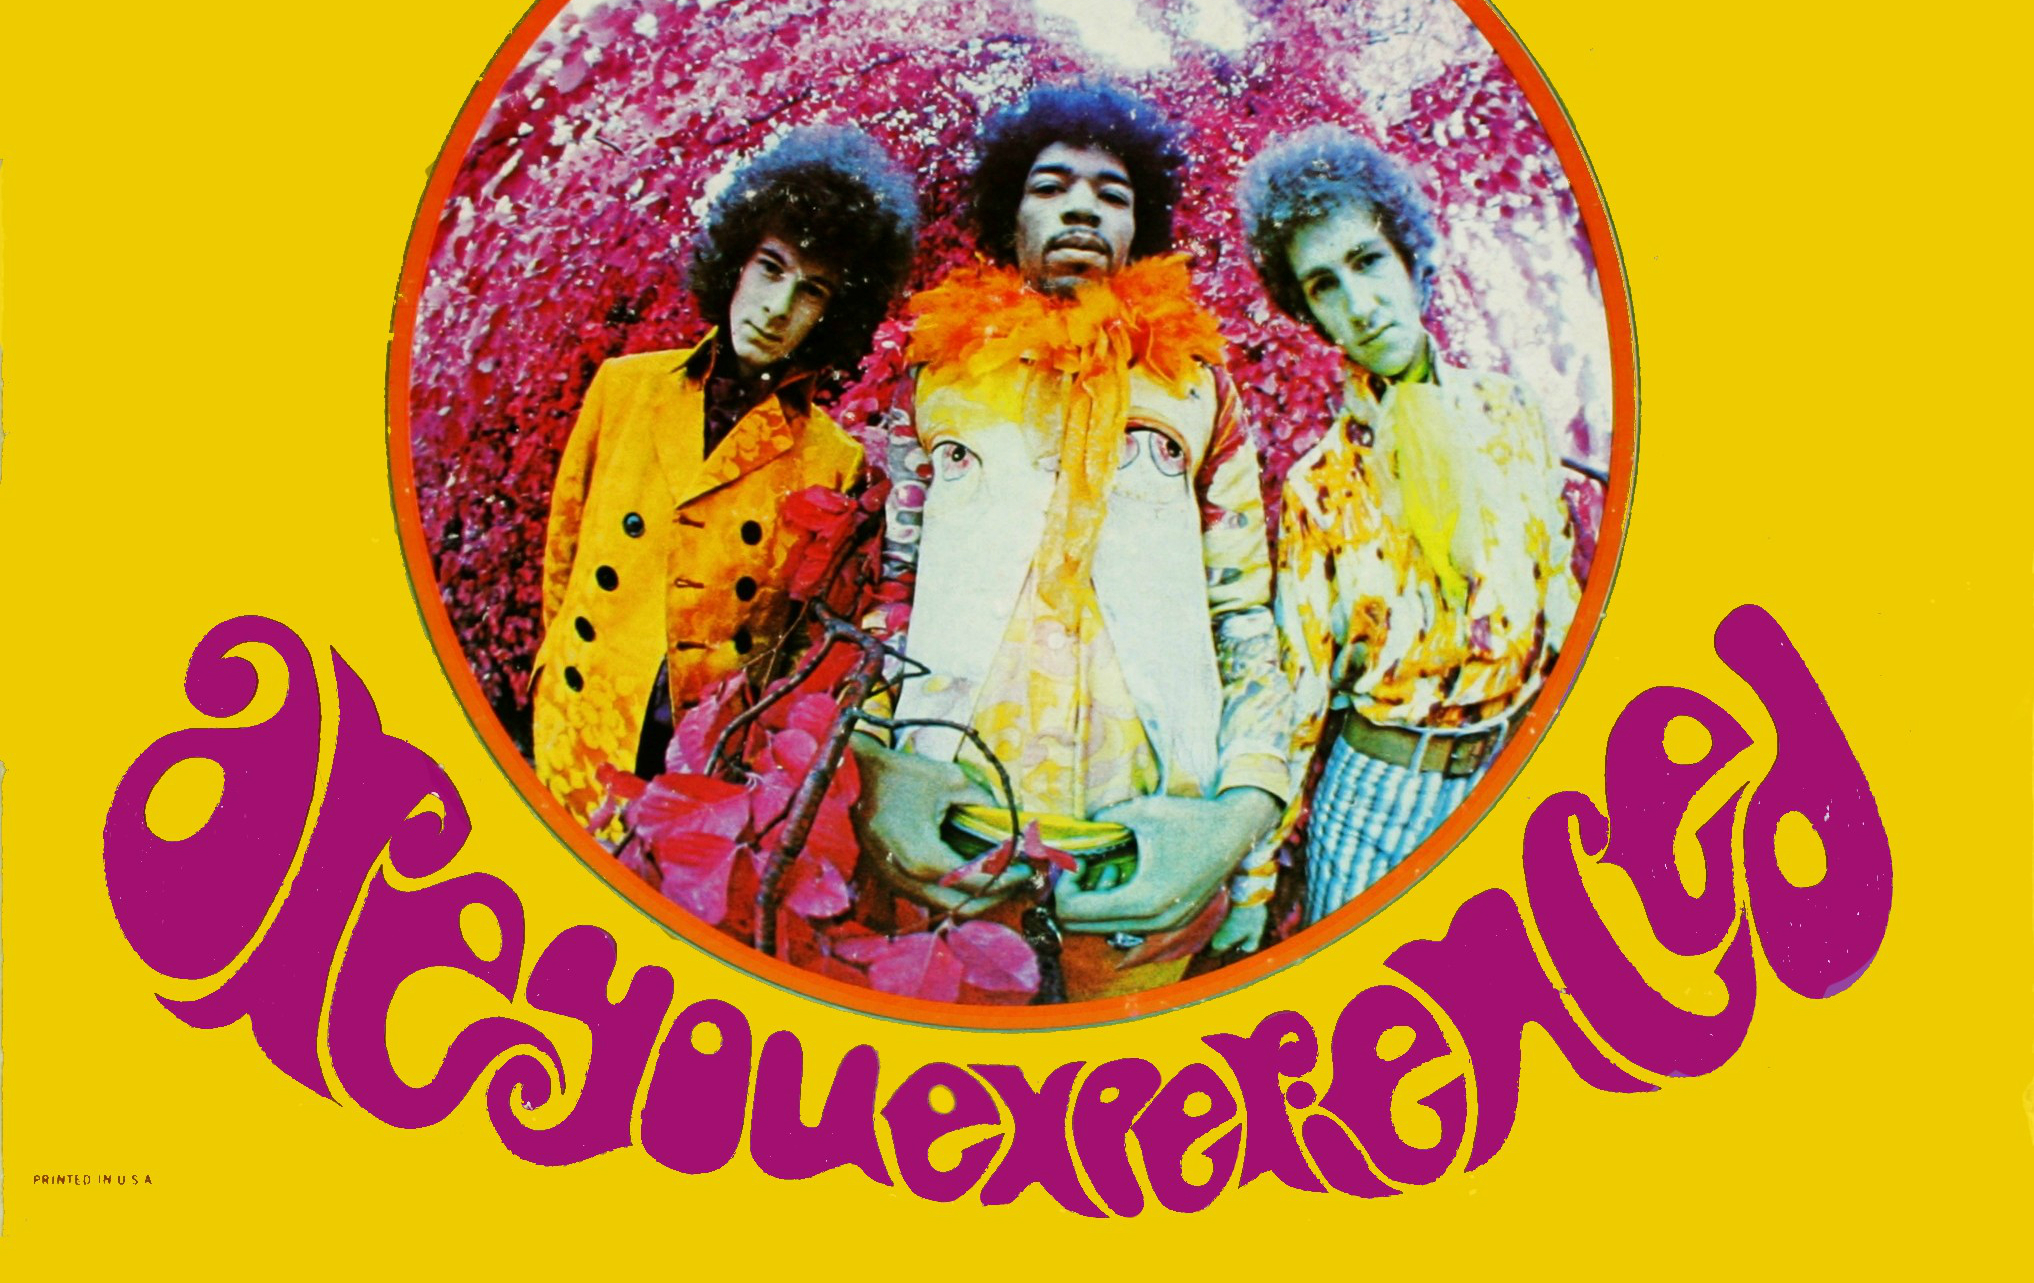 a look at the musical career and albums of jimi hendrix experience 'are you experienced,' the jimi hendrix experience's debut album  experienced'– the 50th anniversary of jimi a look at his early musical genius and.